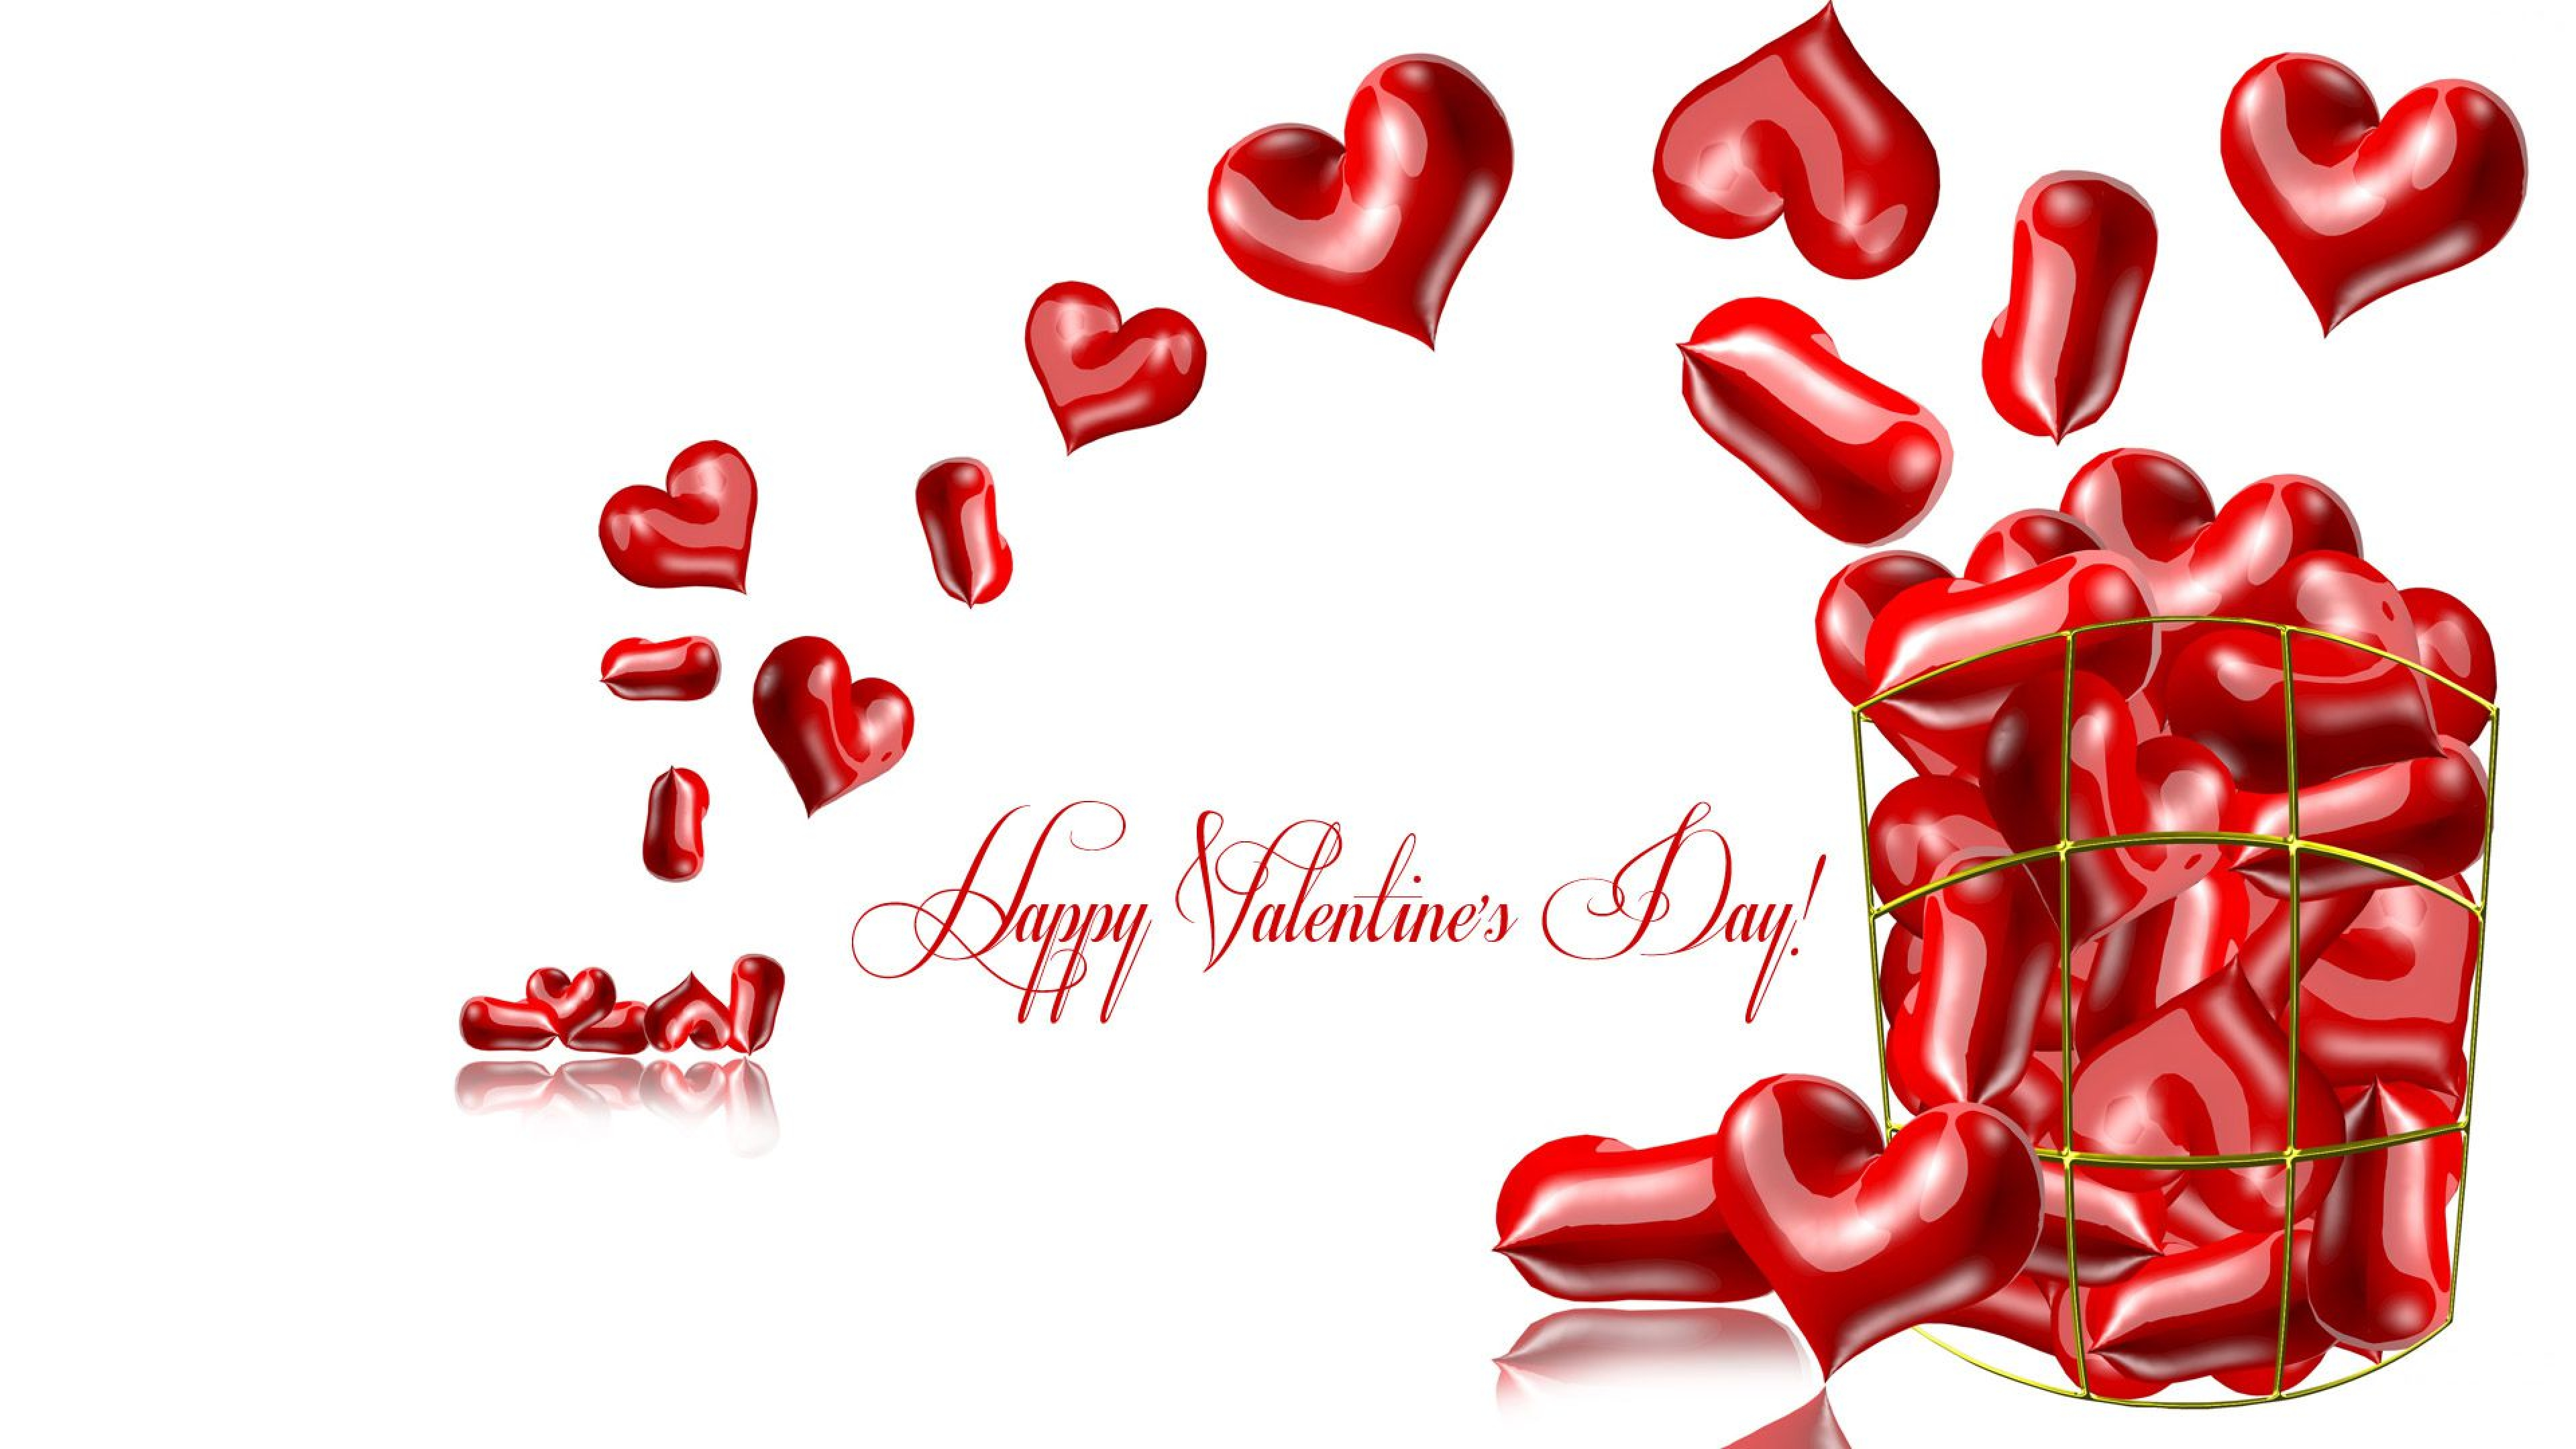 happy valentines day collection of hearts 3d graphic image hd wallpaper